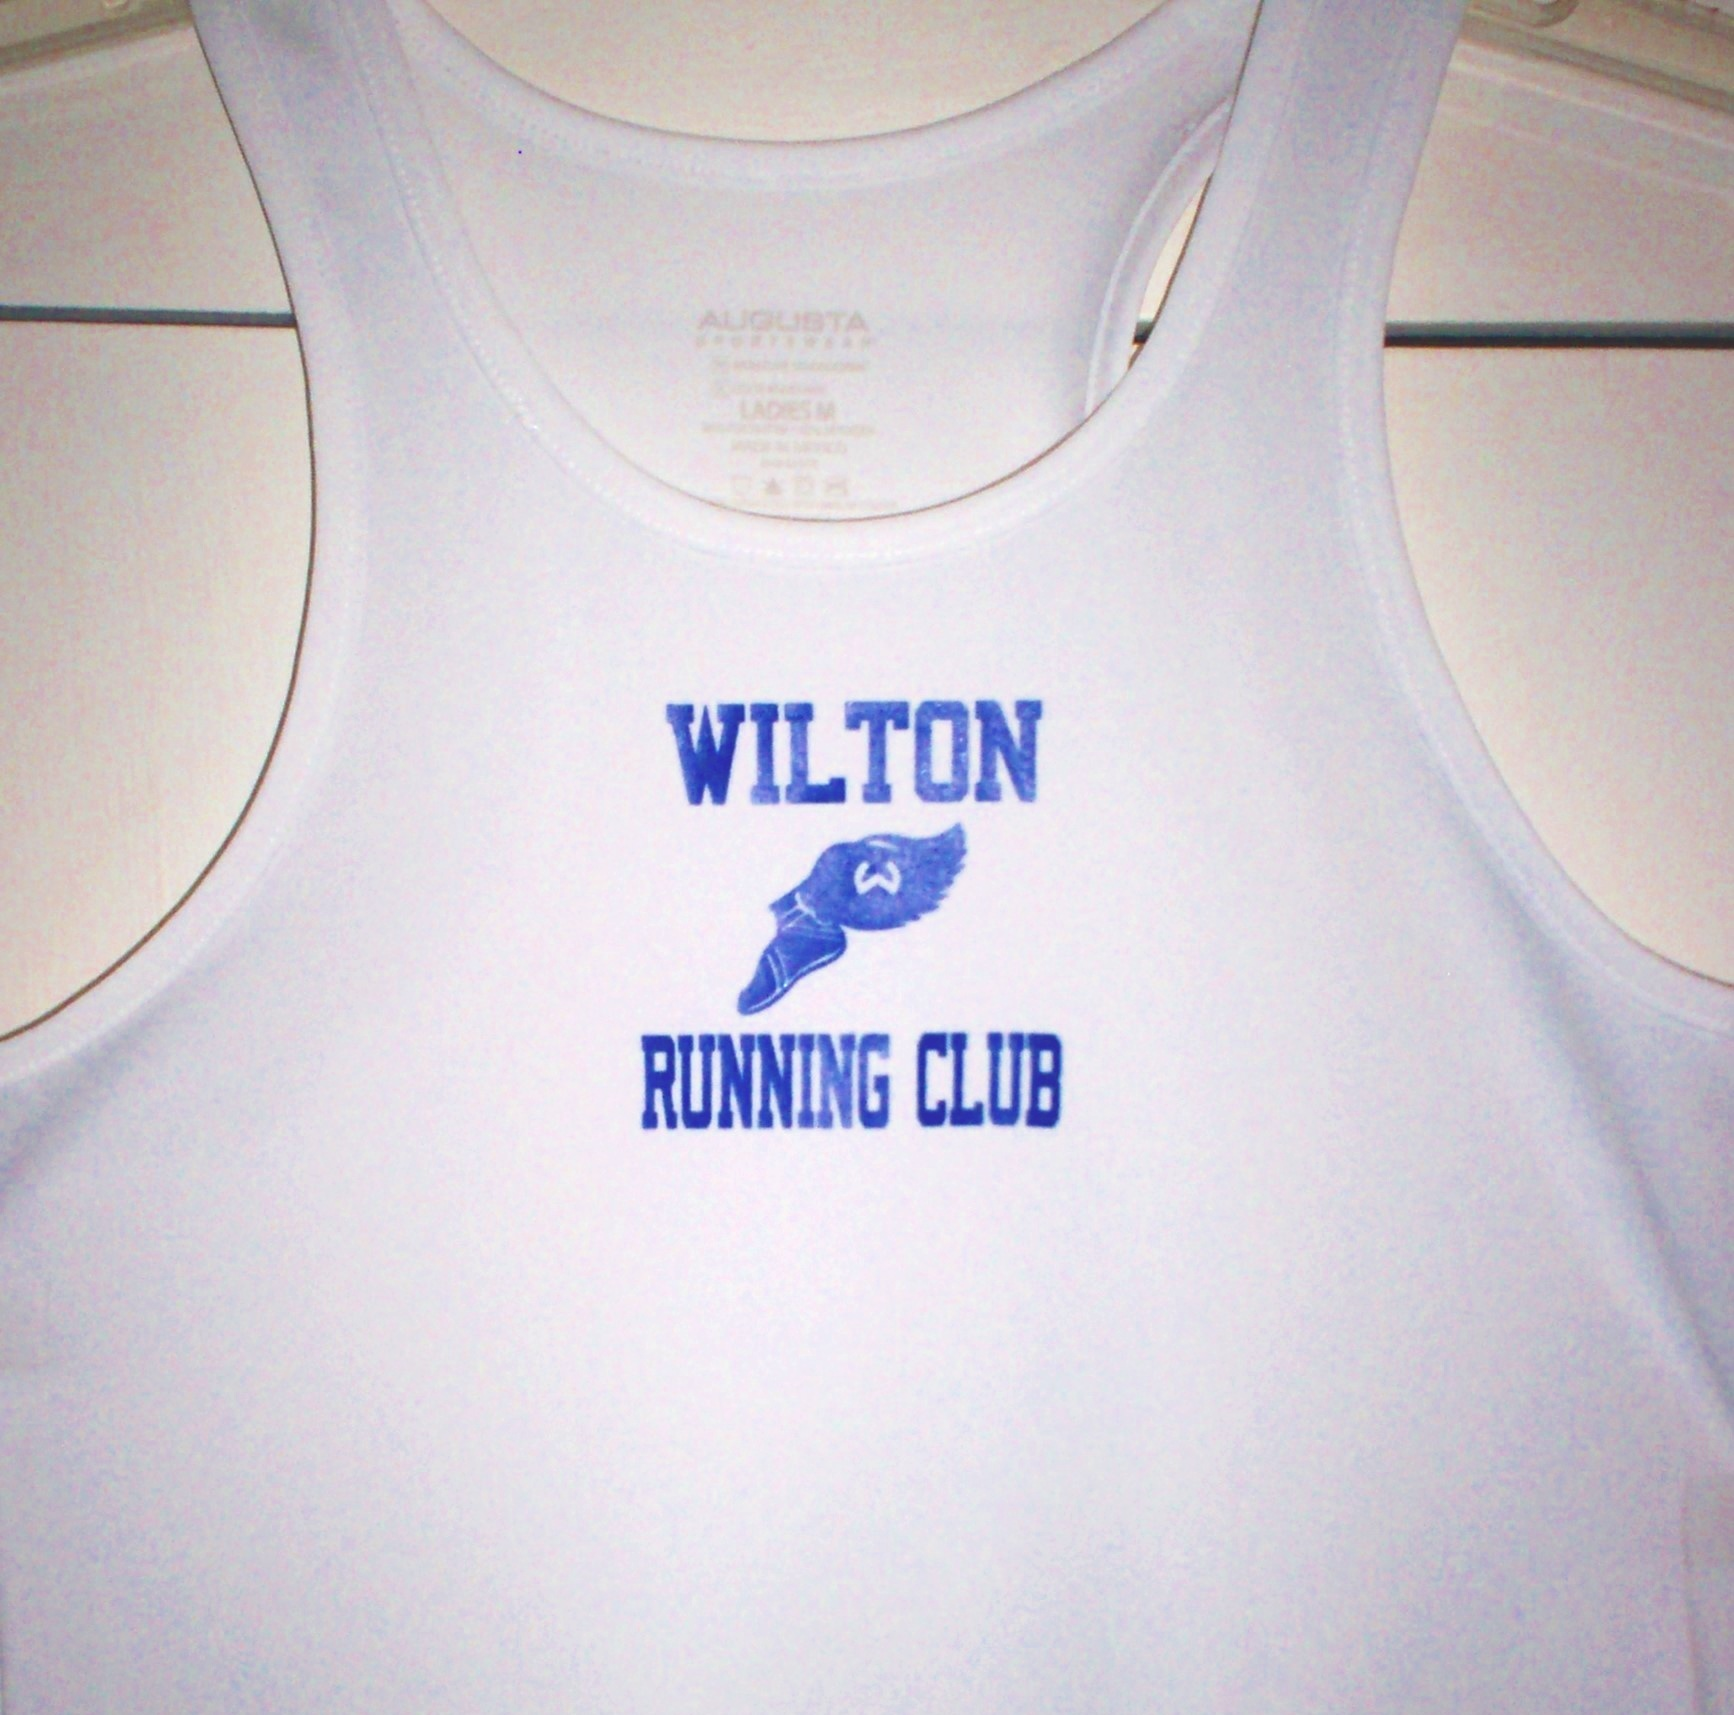 Wilton Running Club Tank Top in Girls and Women's sizes